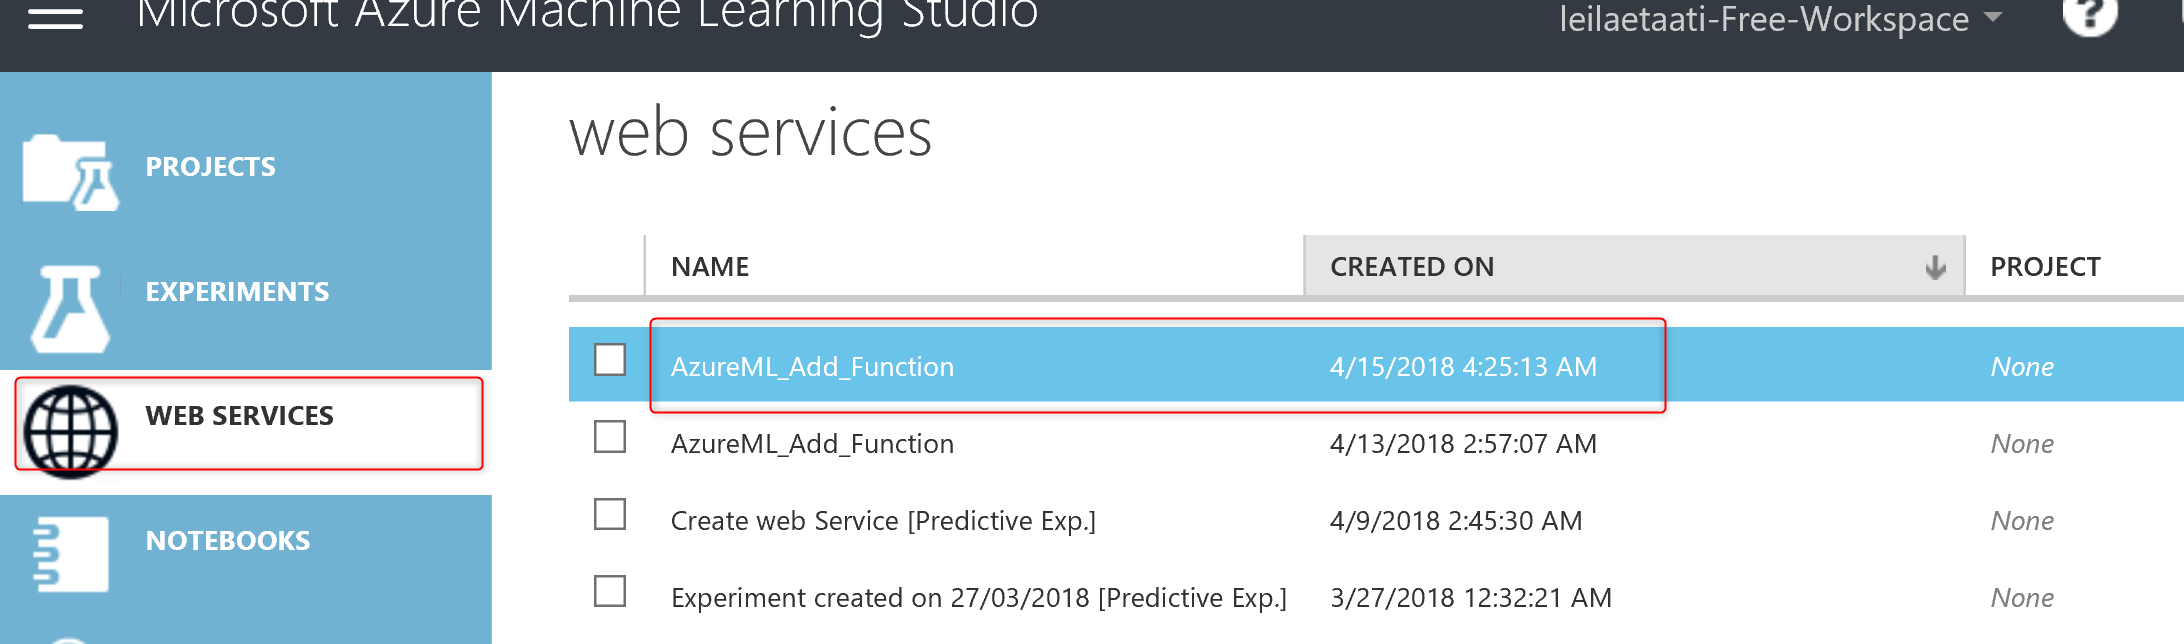 Azure ML Package-Publish a Web service from R-Part2 – RADACAD